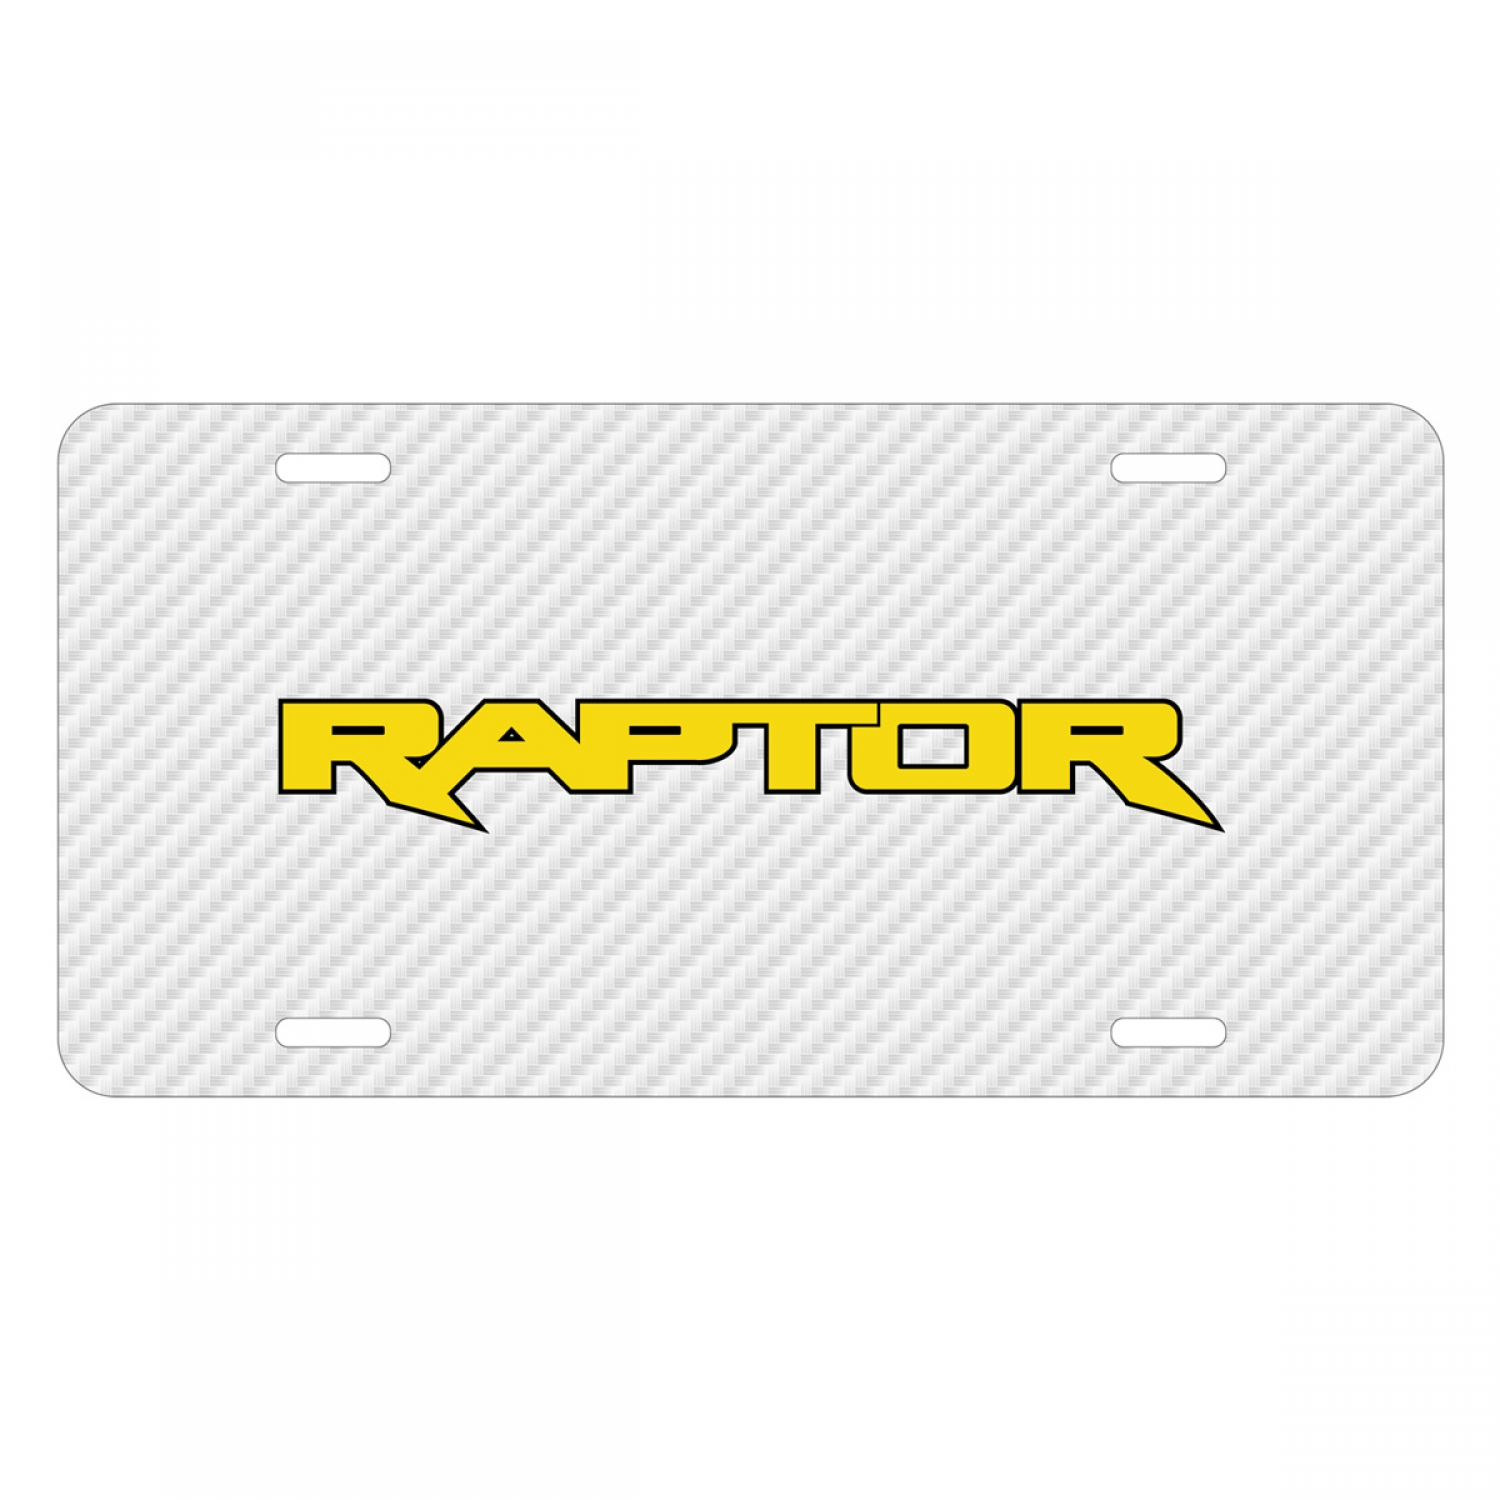 Ford F-150 Raptor 2017 in Yellow White Carbon Fiber Texture Graphic UV Metal License Plate